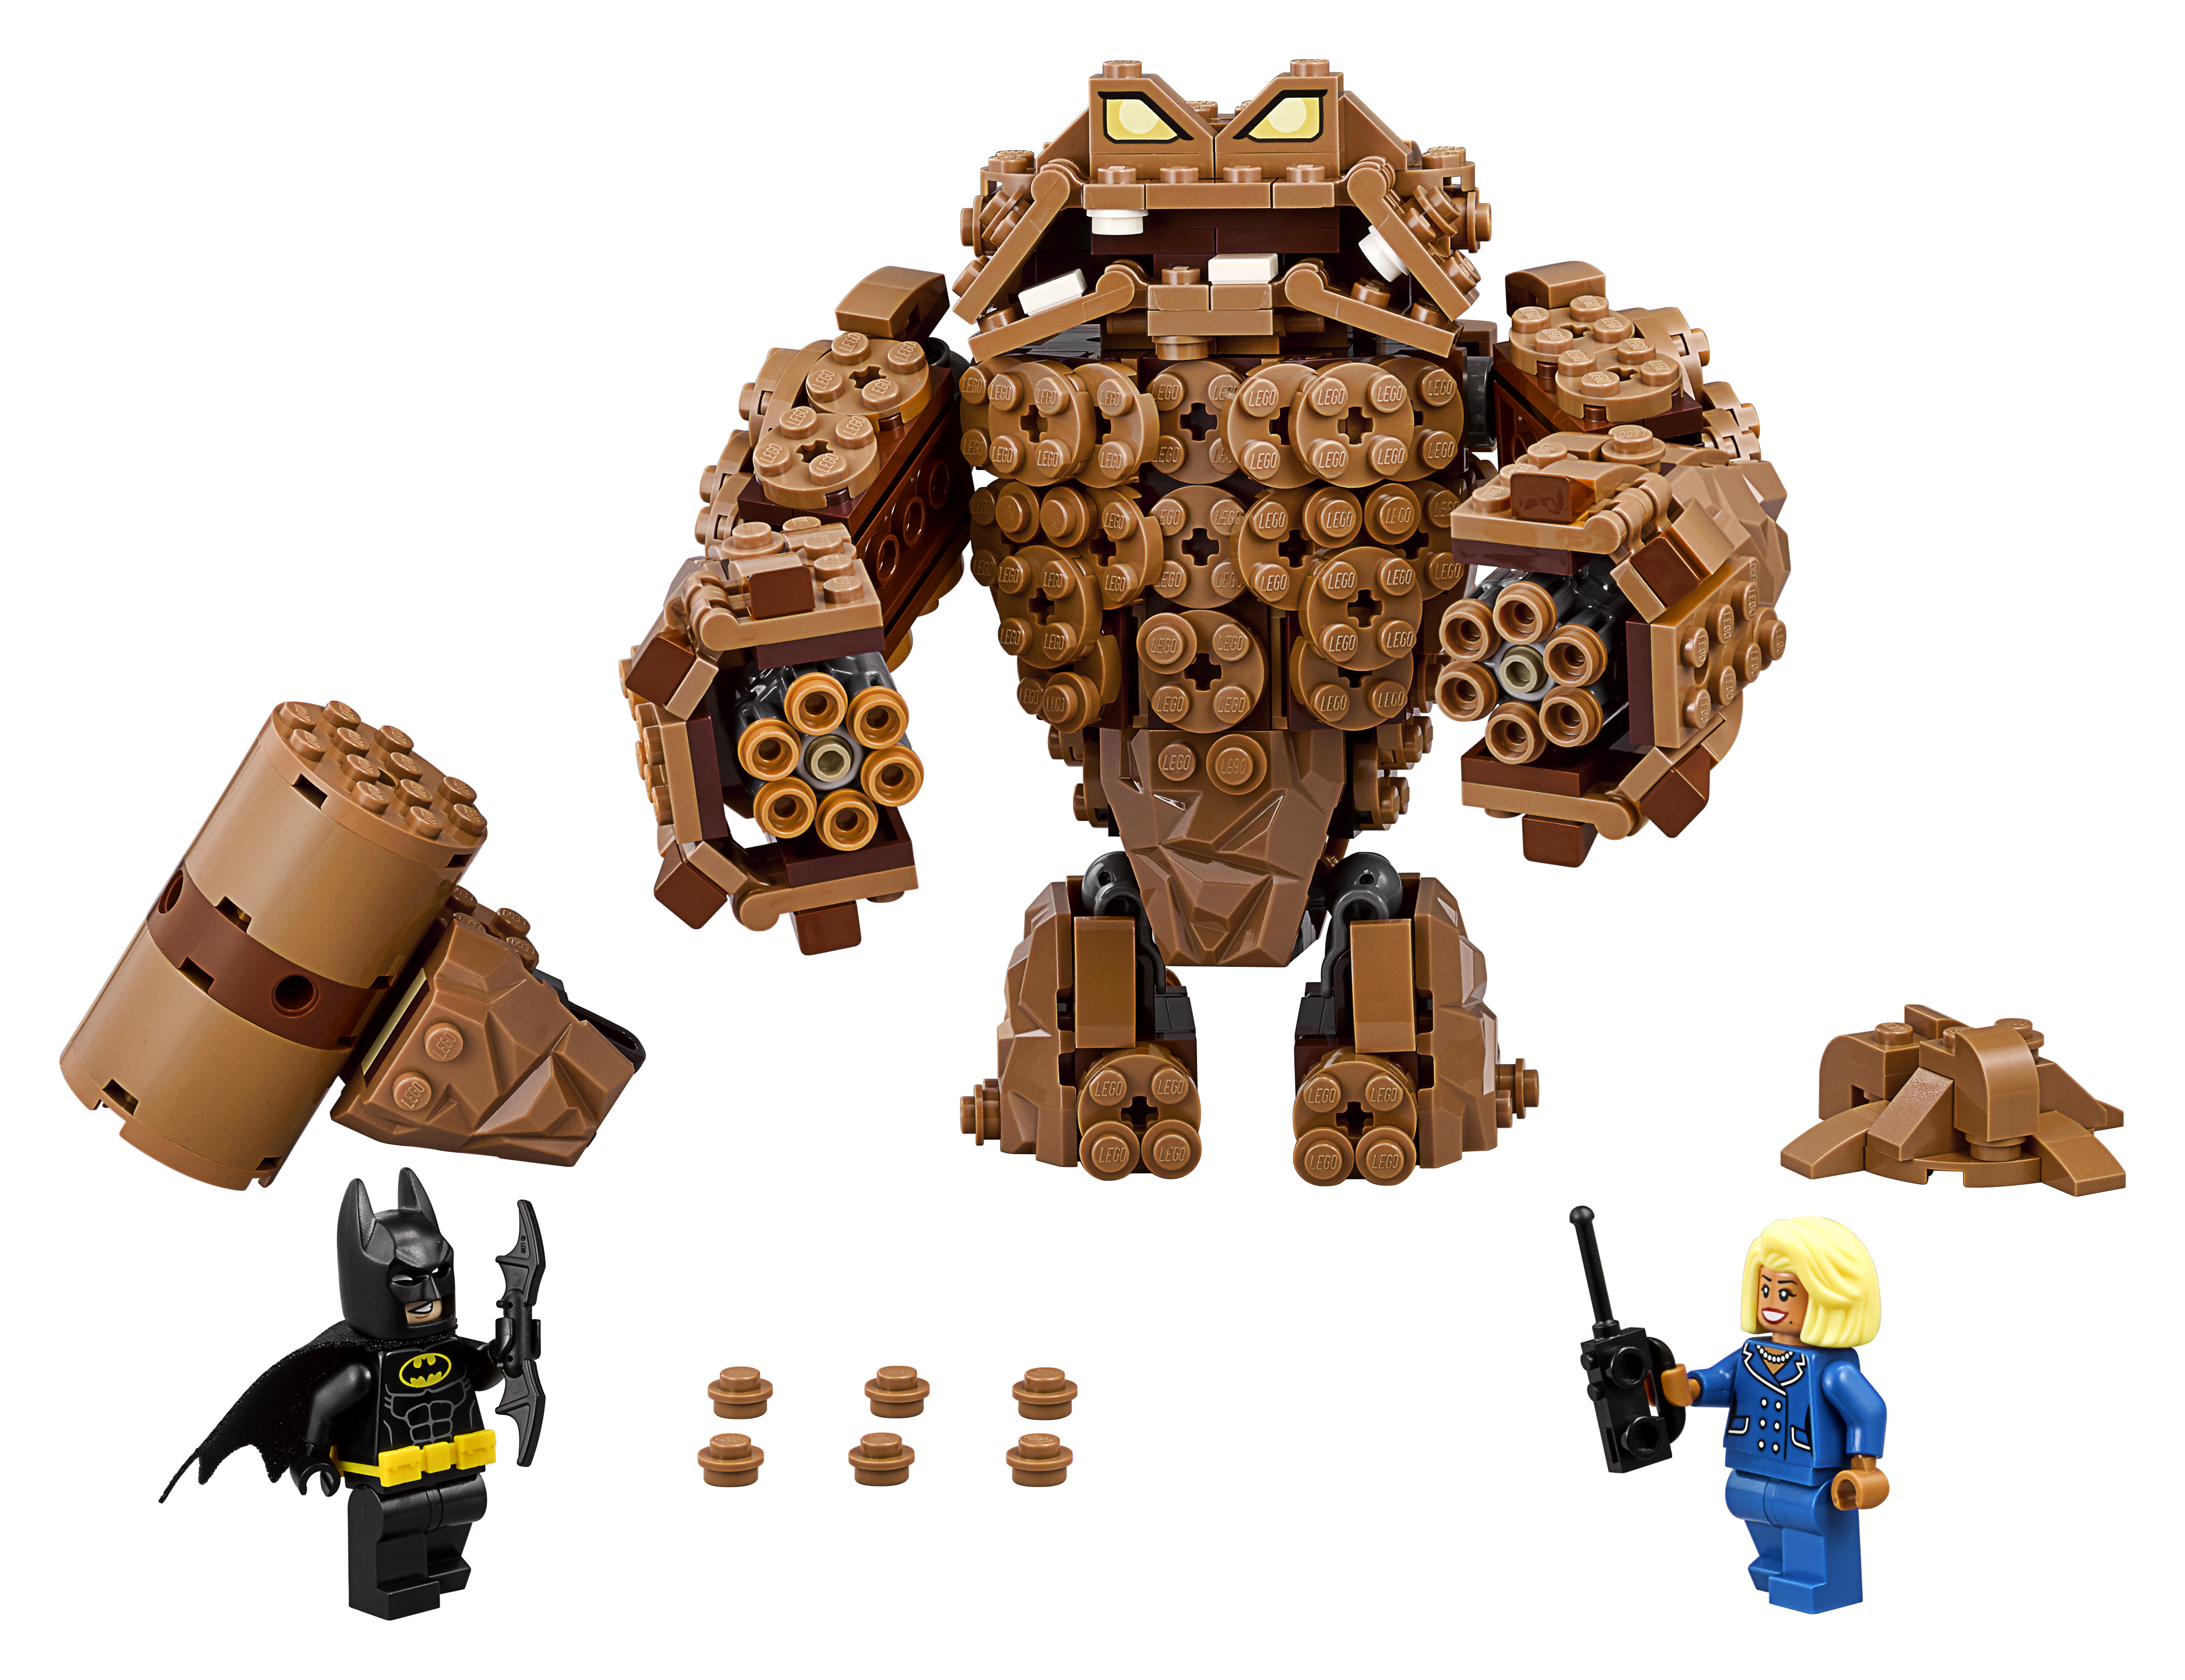 Lego Batman playset